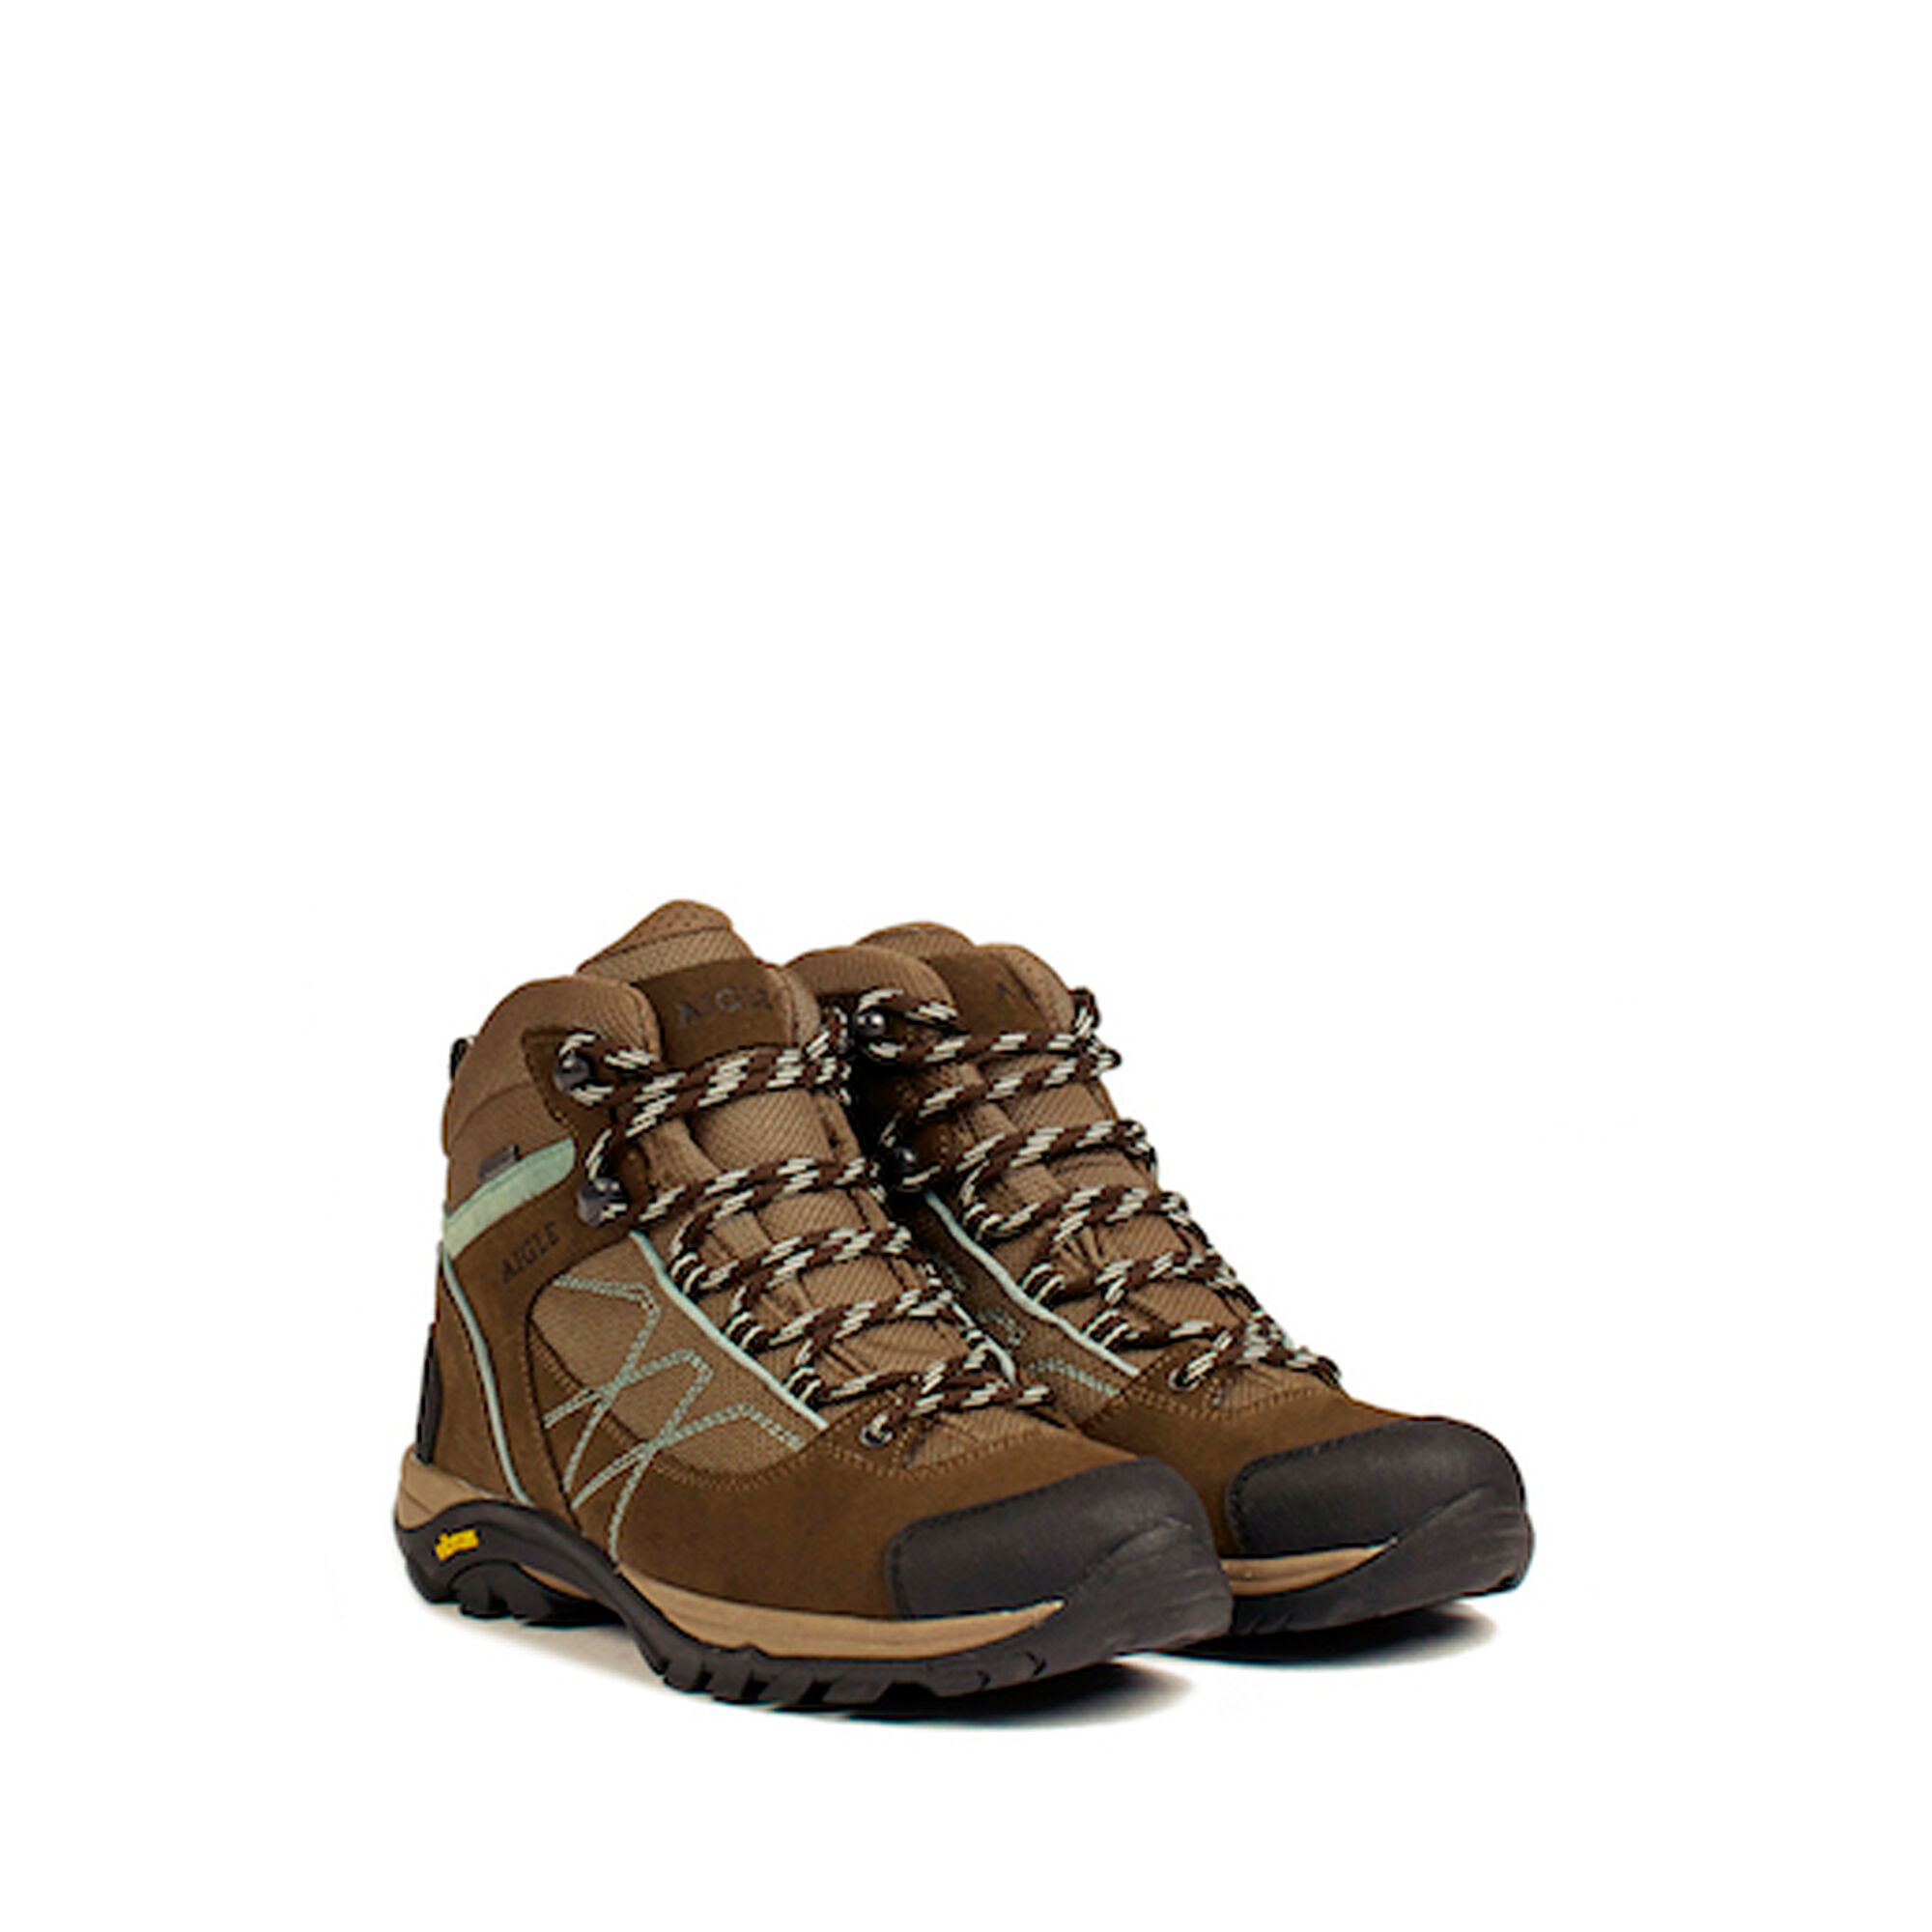 Chaussures femme Bottines Chaussures AIGLE femme femme OHxwpqd